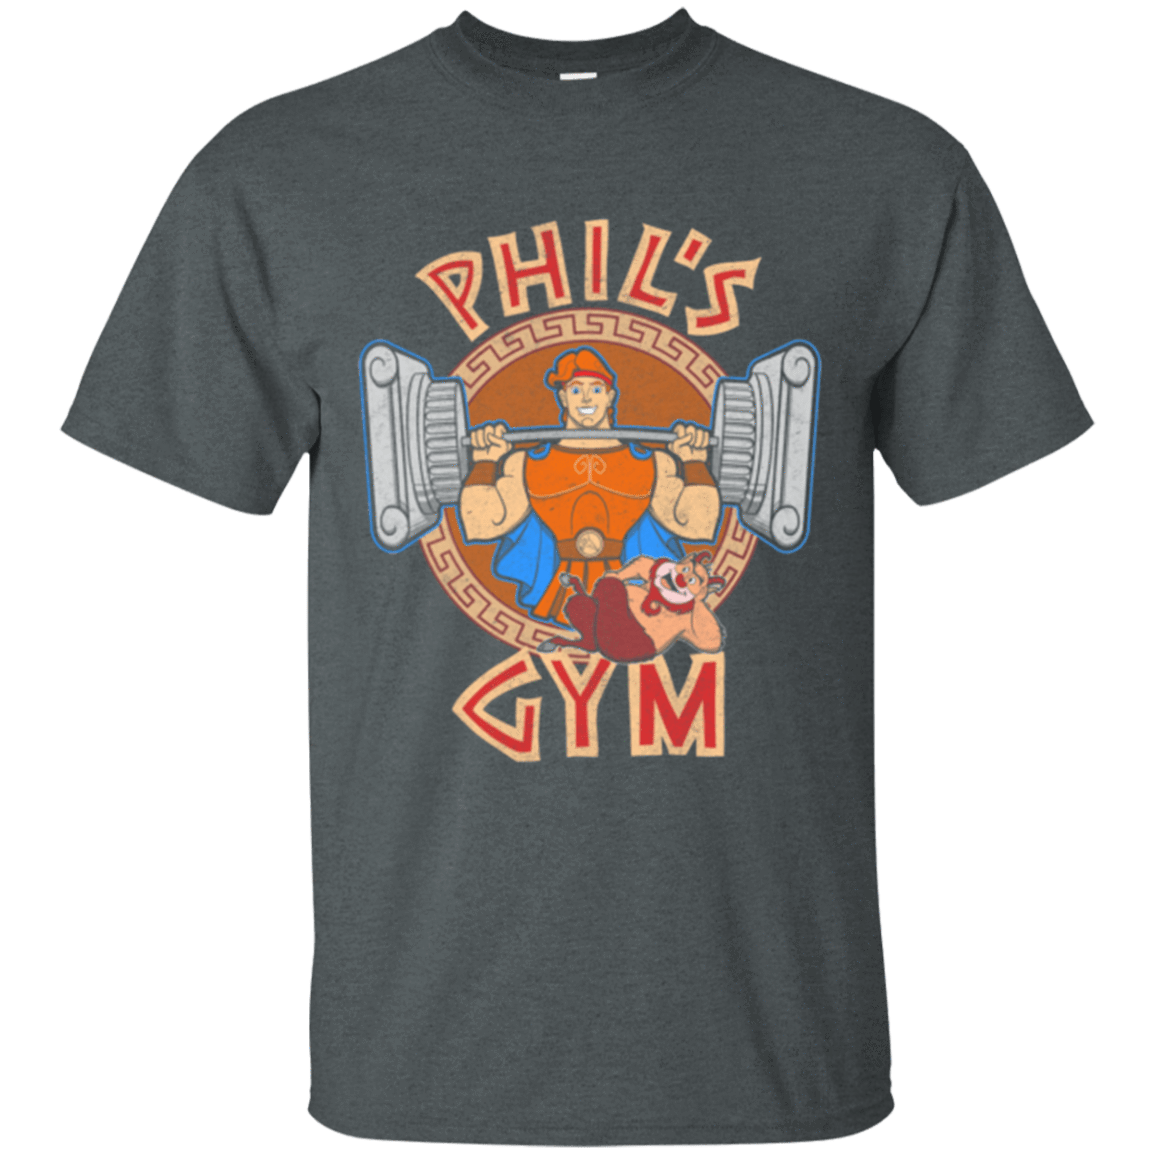 T-Shirts Dark Heather / Small Phil's Gym T-Shirt